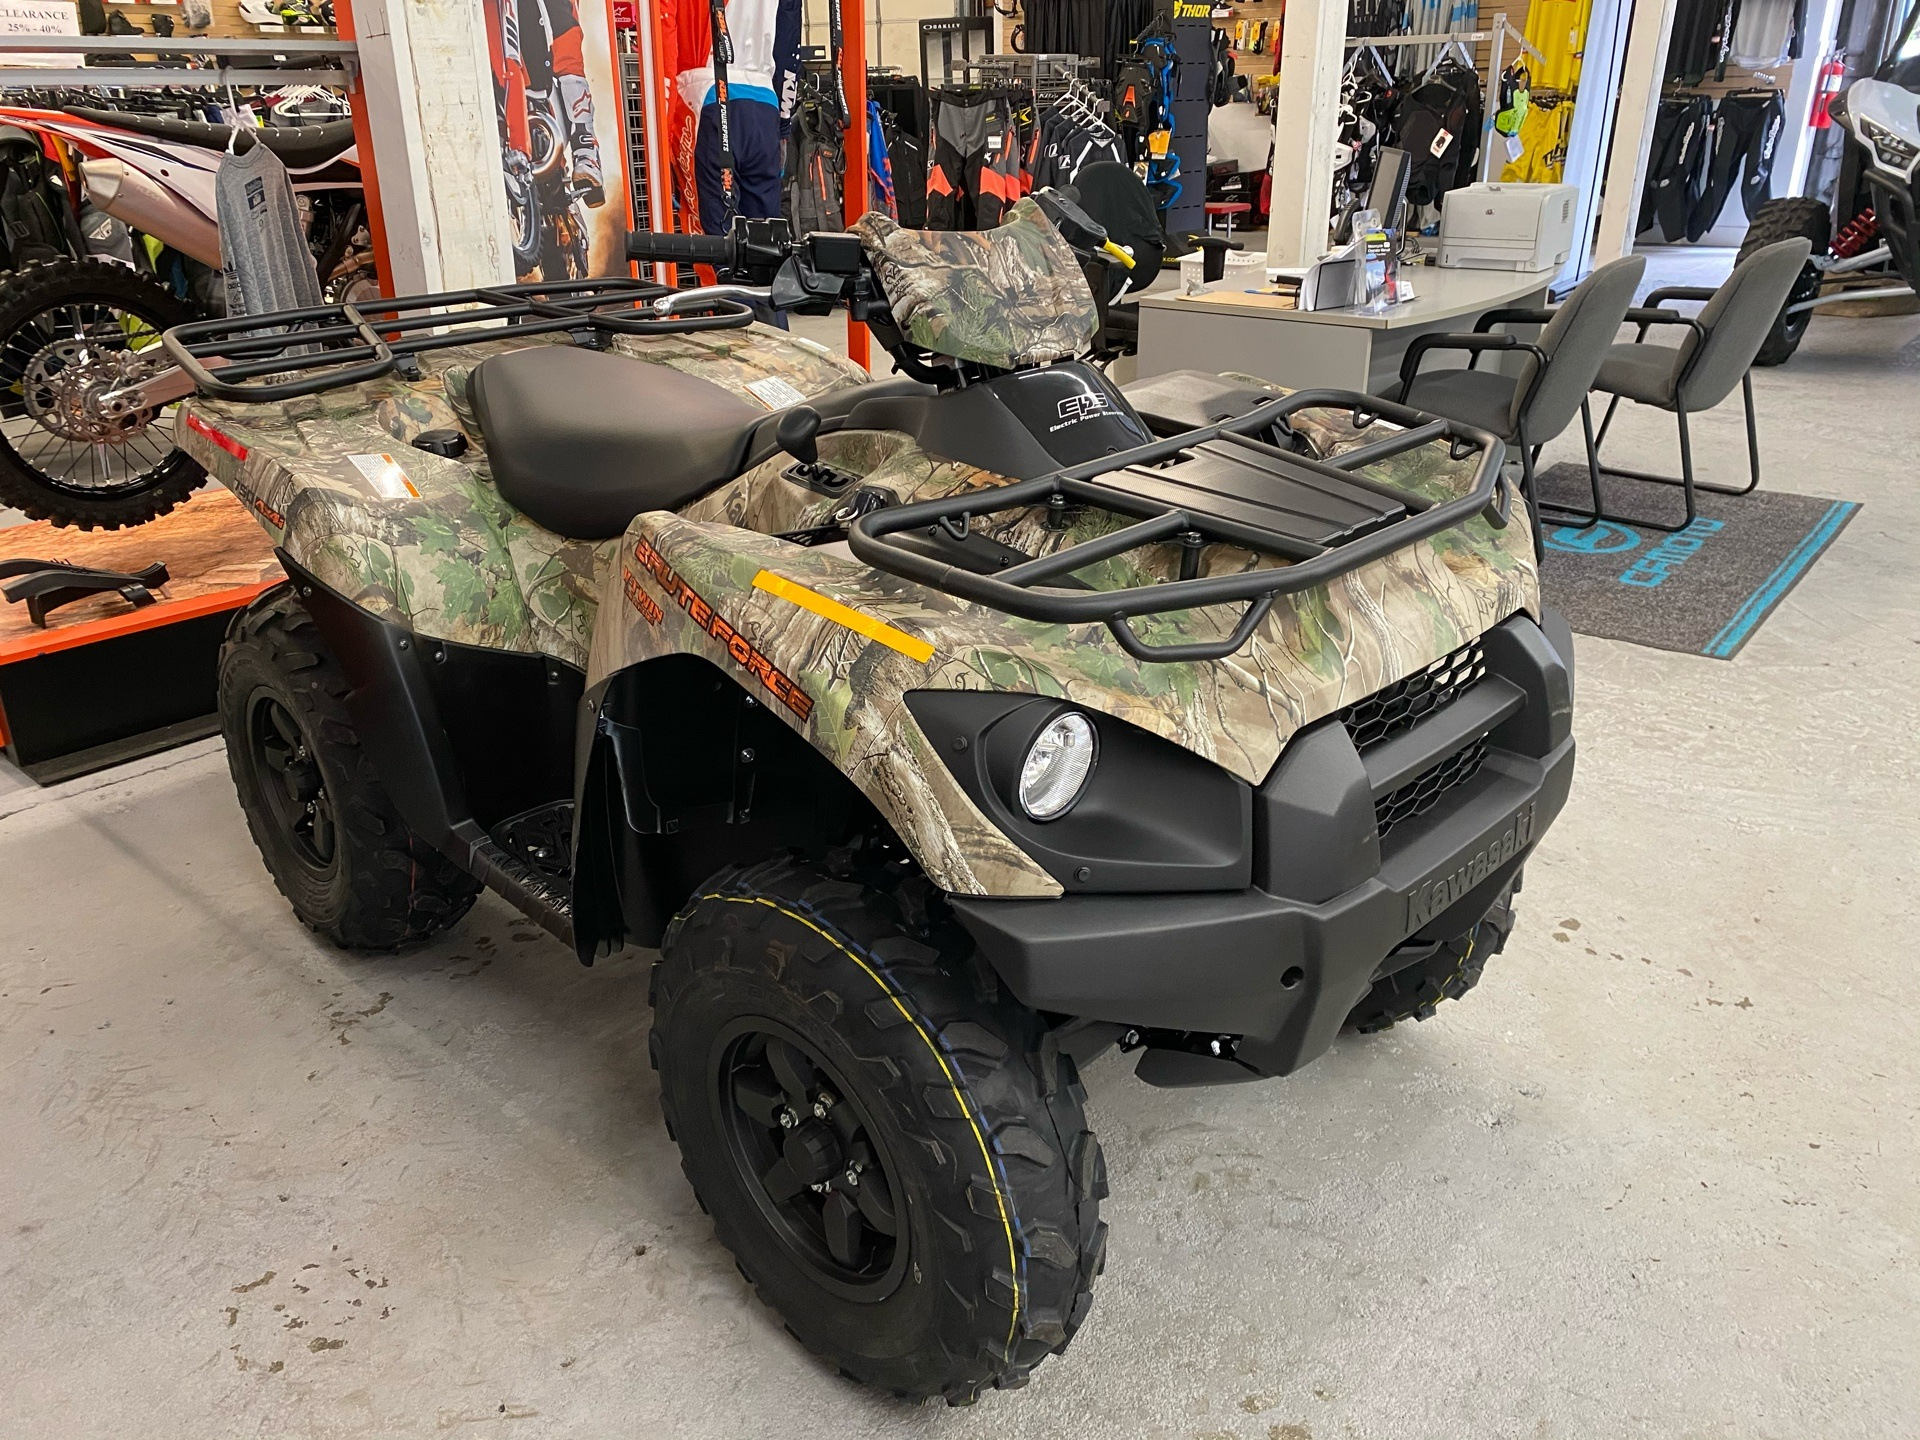 2021 Kawasaki Brute Force 750 4x4i EPS Camo in Bellingham, Washington - Photo 1